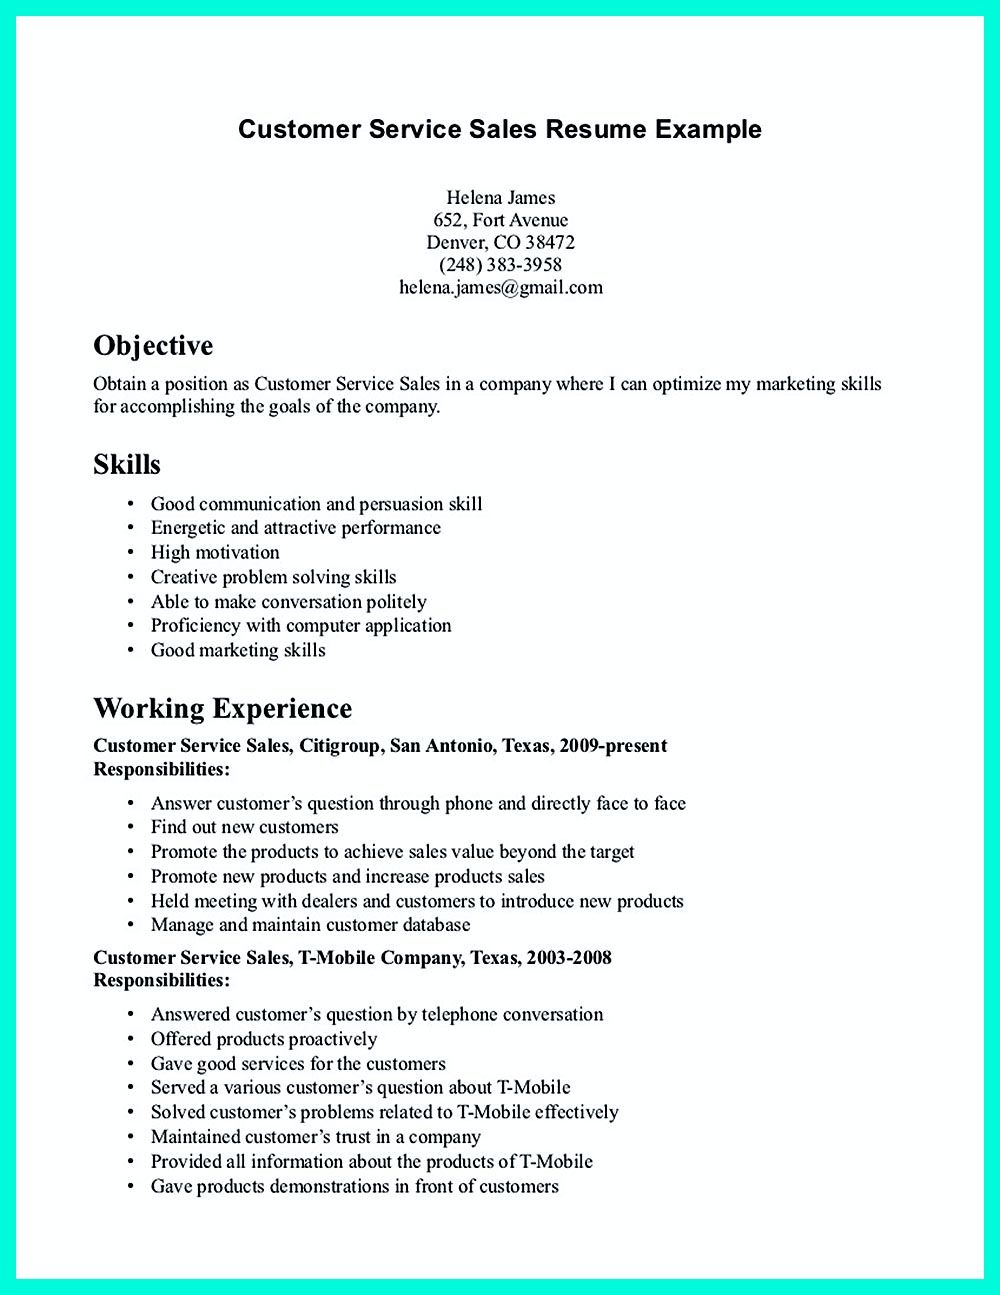 Pin on Resume Sample Template And Format | Pinterest